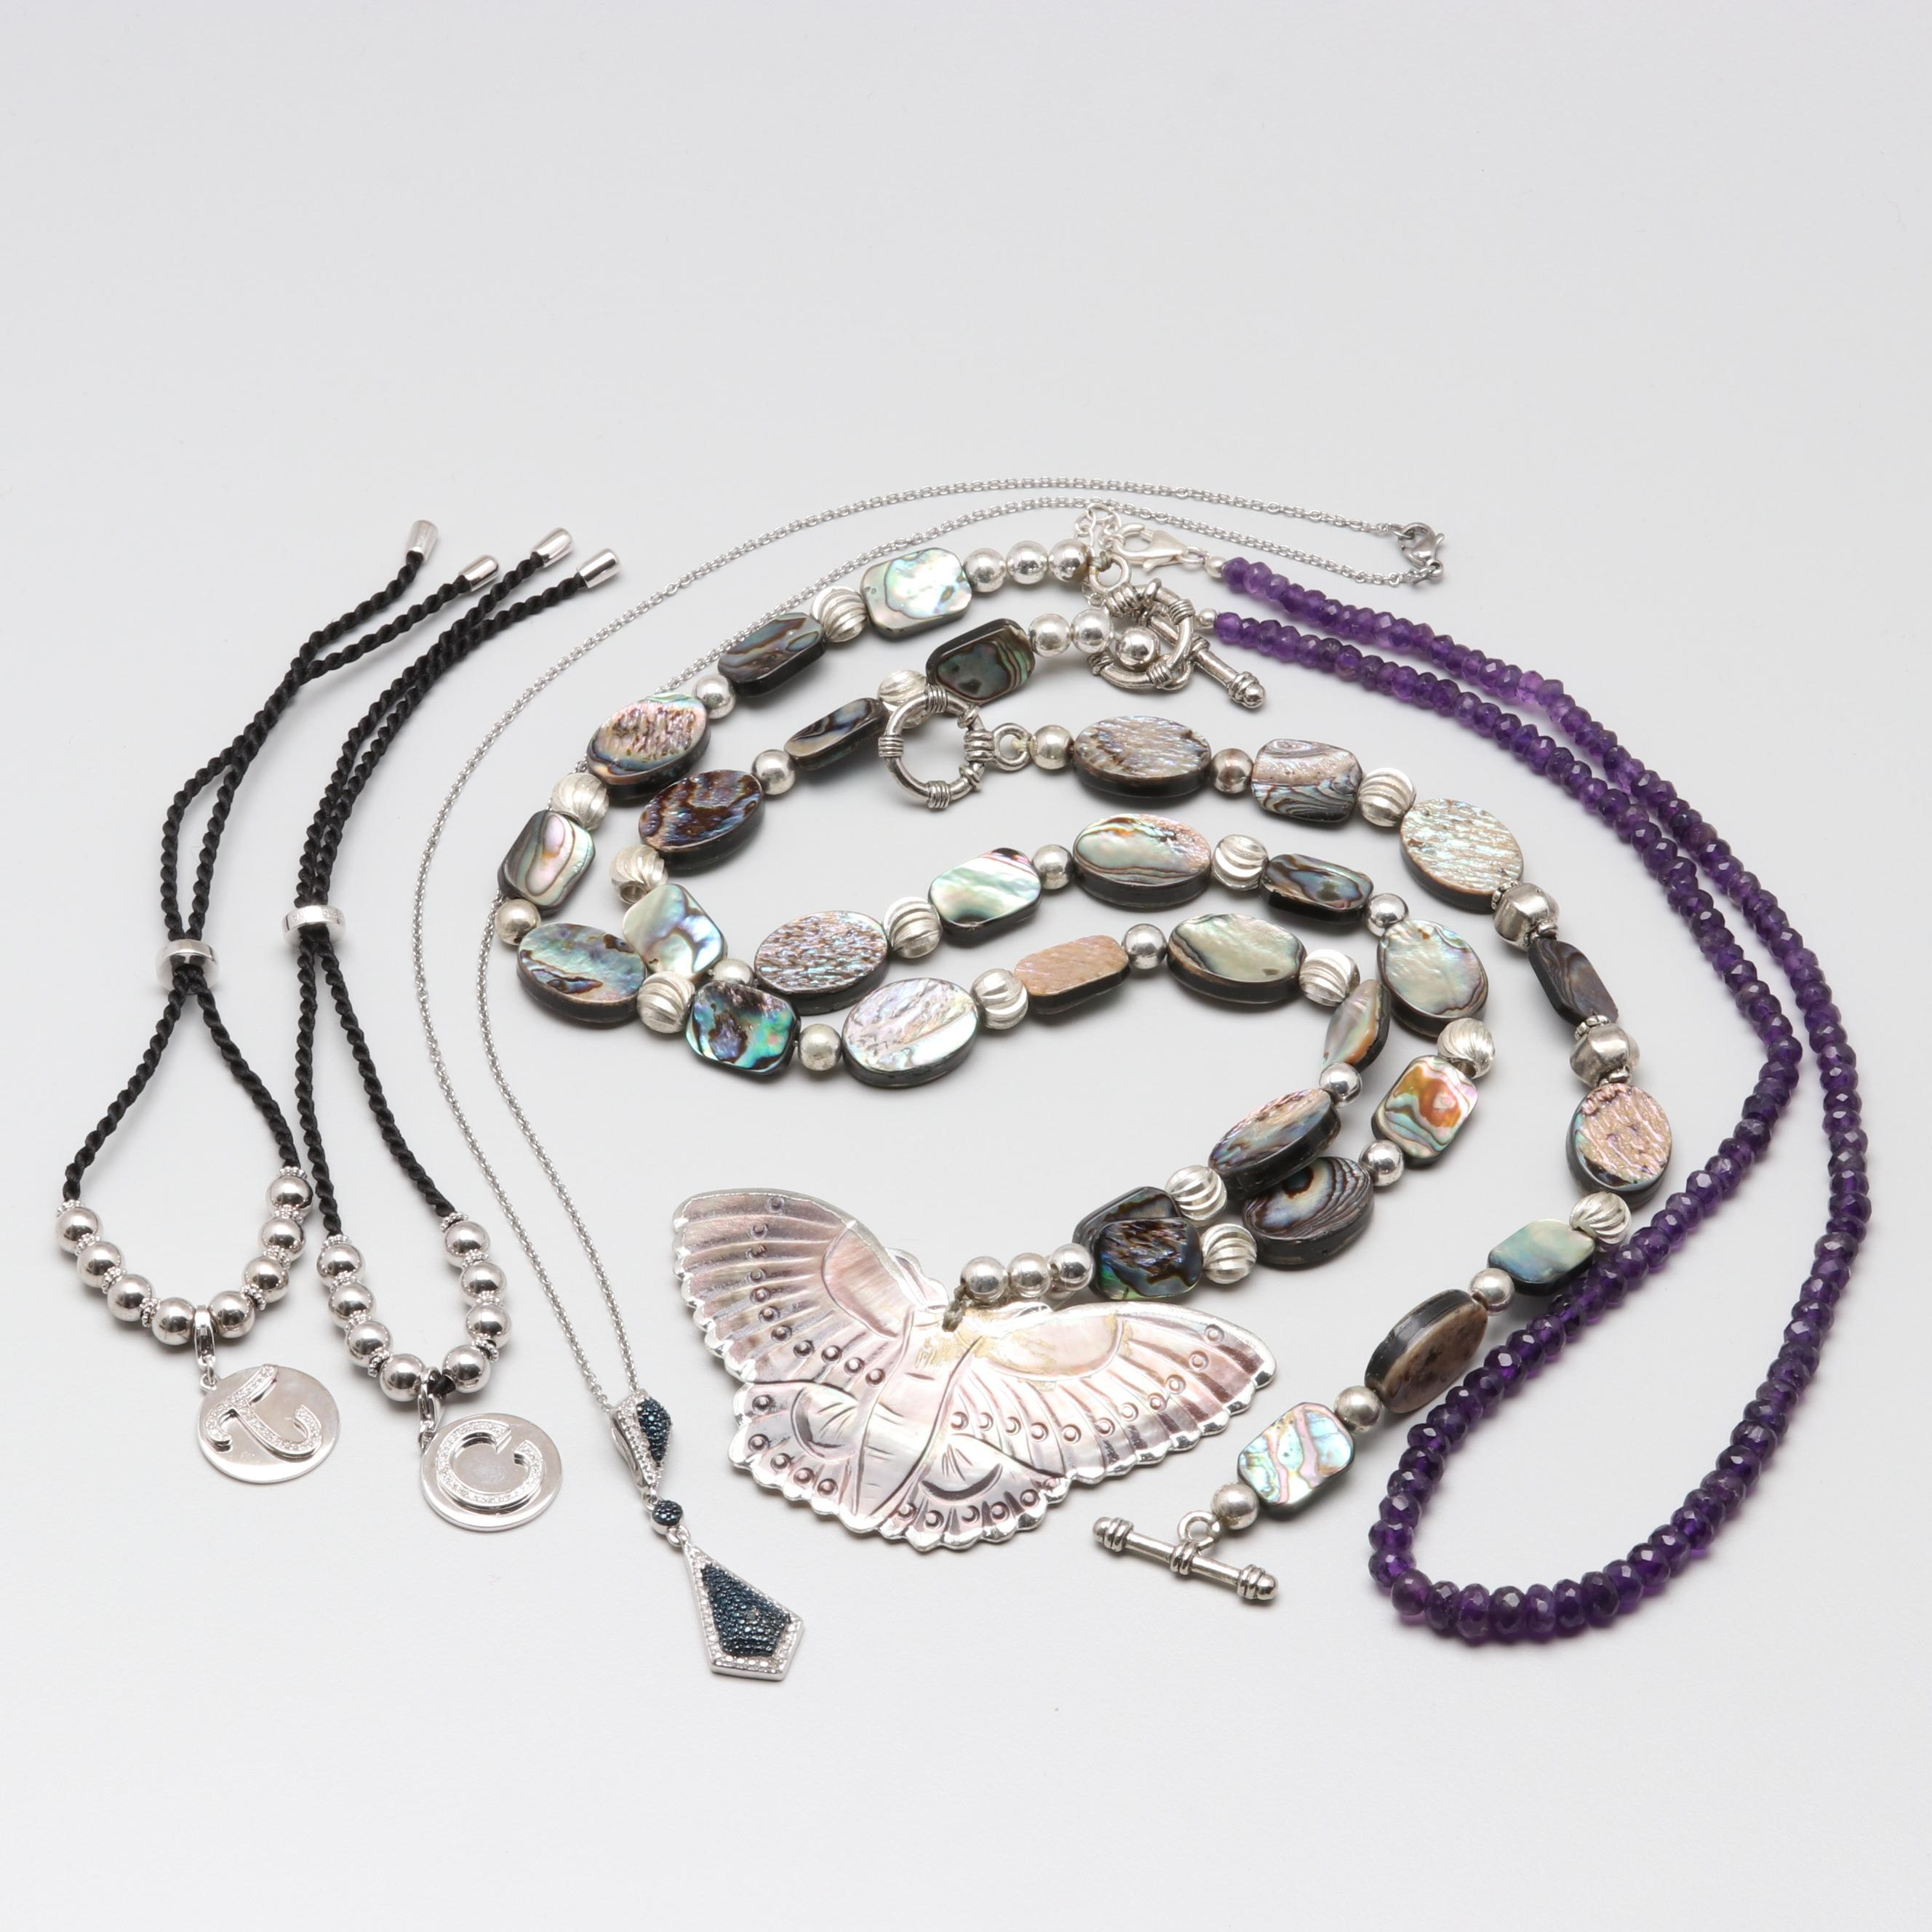 Sterling Silver Jewelry Assortment with Diamond, Abalone, and Amethyst